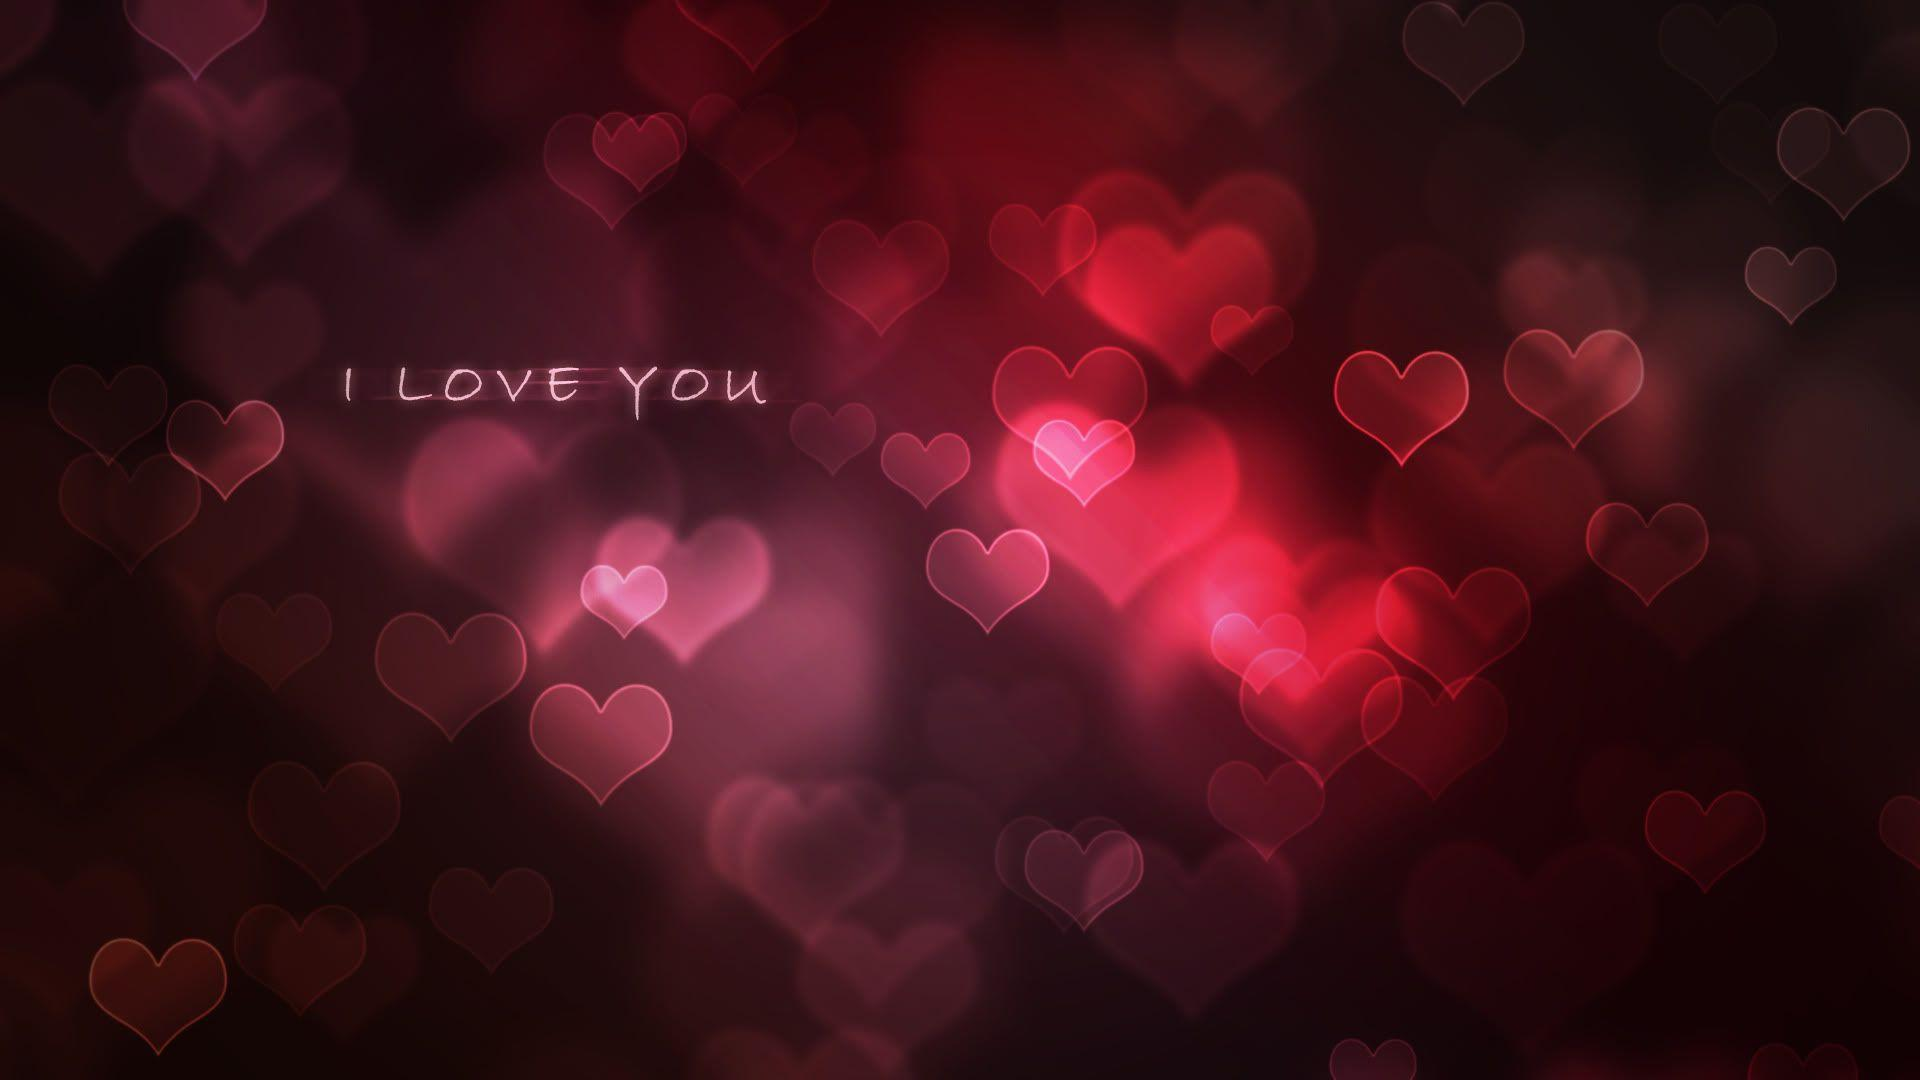 Love Background Images - Wallpaper Cave